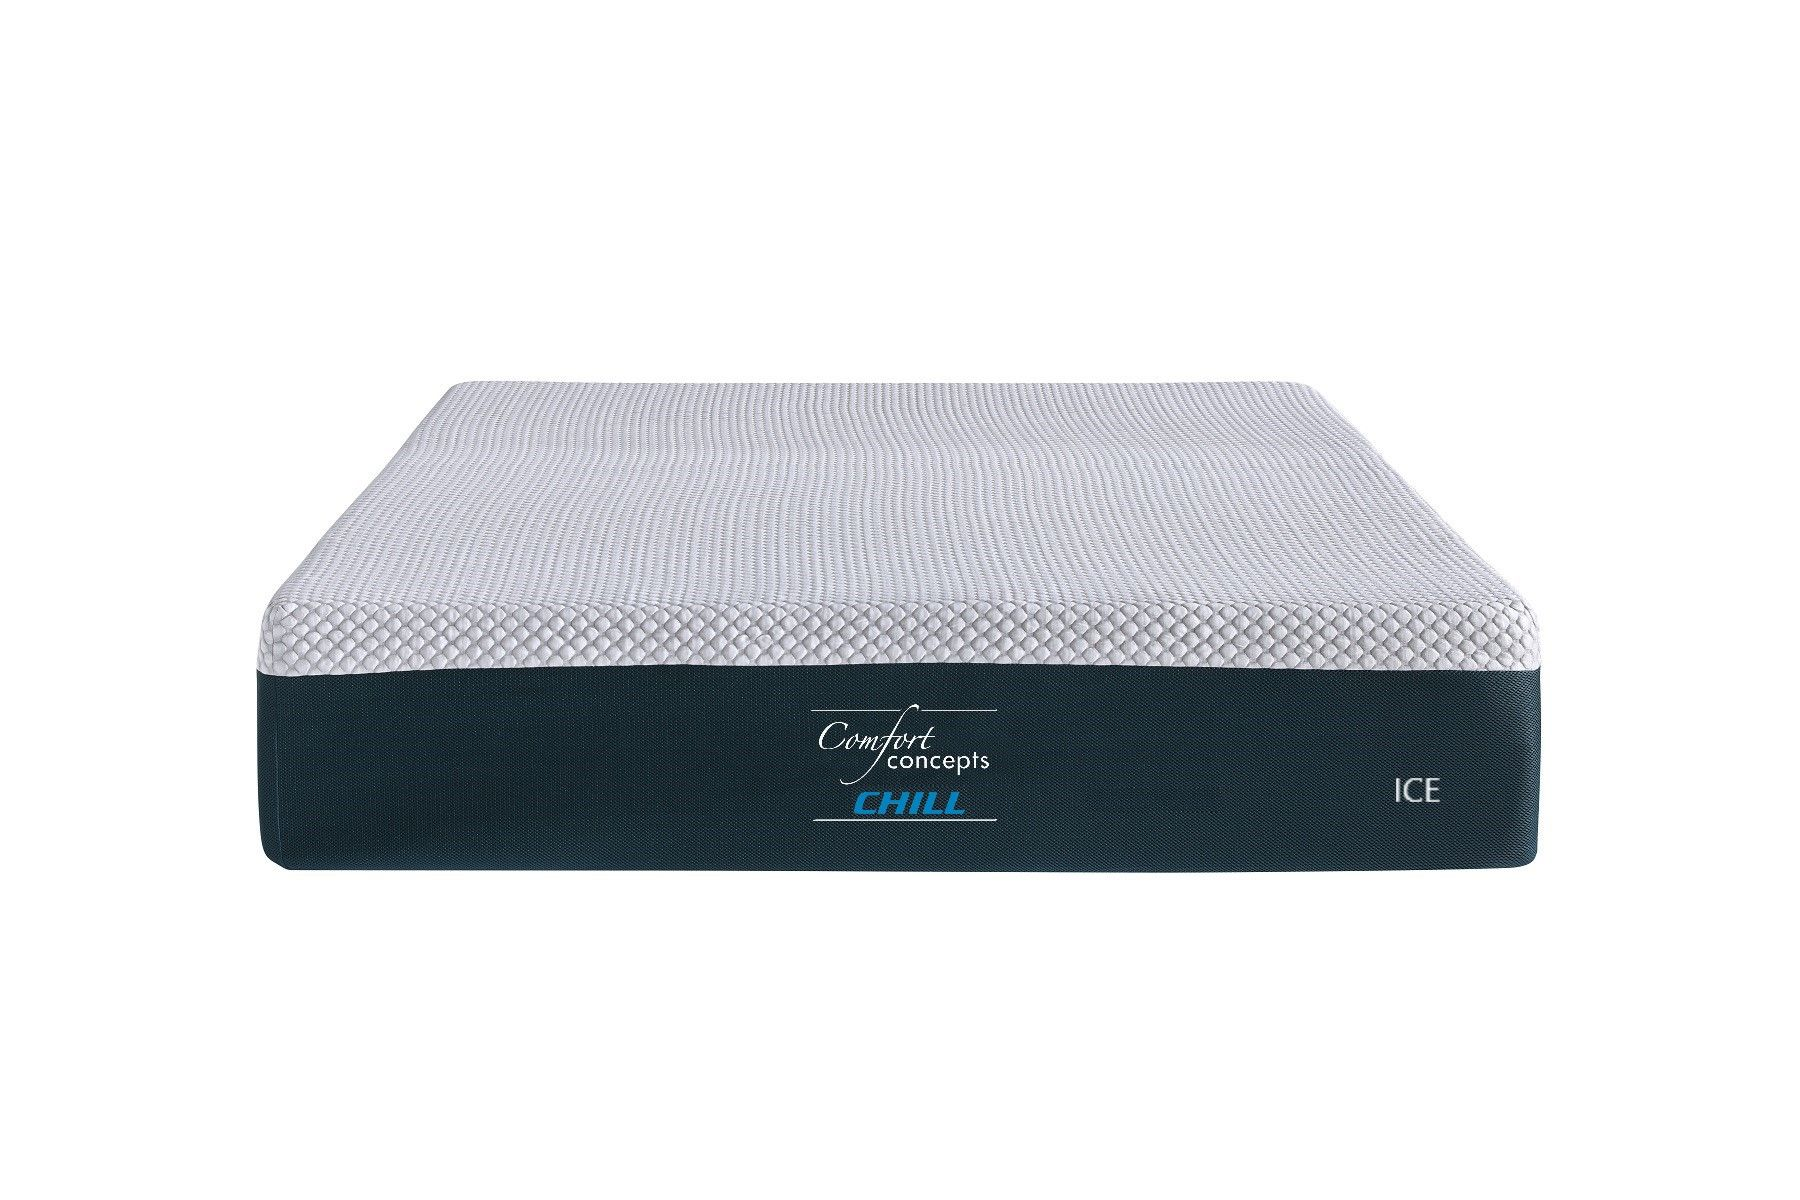 comfort concepts chill ice 12 gel foam mattress ice is the 12